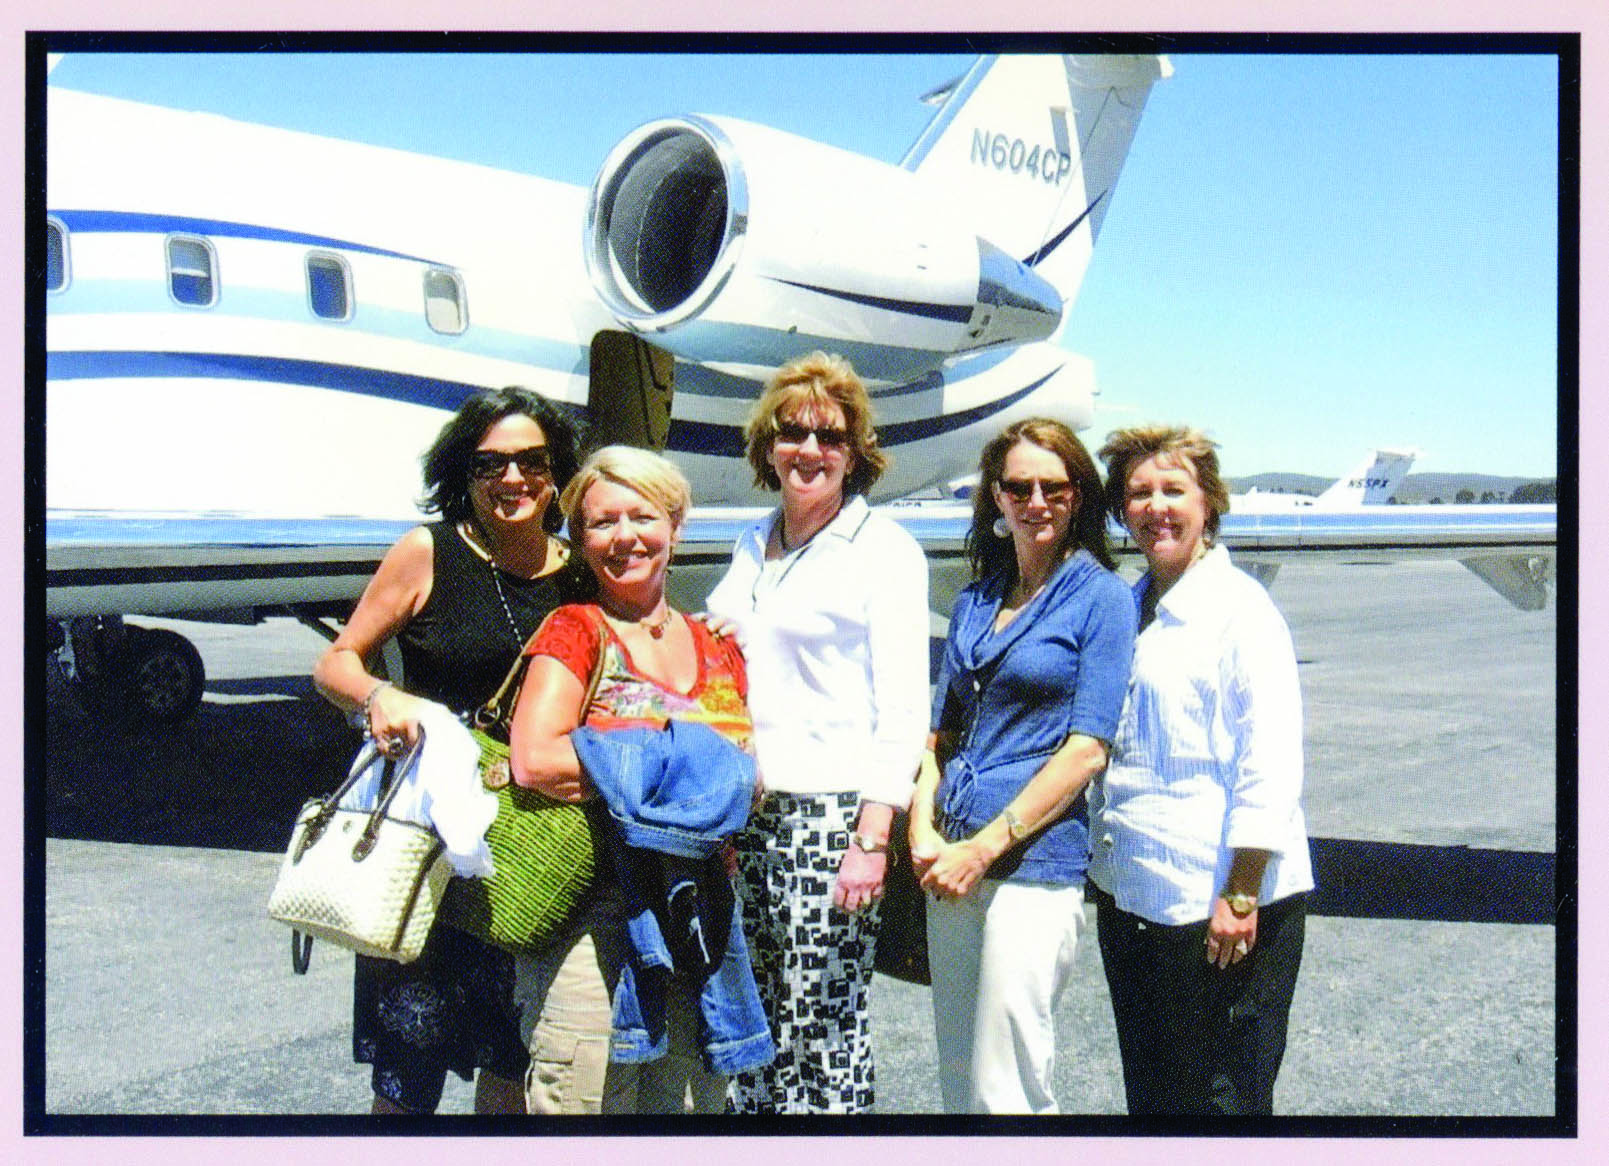 Julia Carpenter, Jill Hoover, Tricia Leonoudakis, Stephanie James and Becky Blake traveled to Pebble Beach to celebrate 25 years of playing Bunco together.